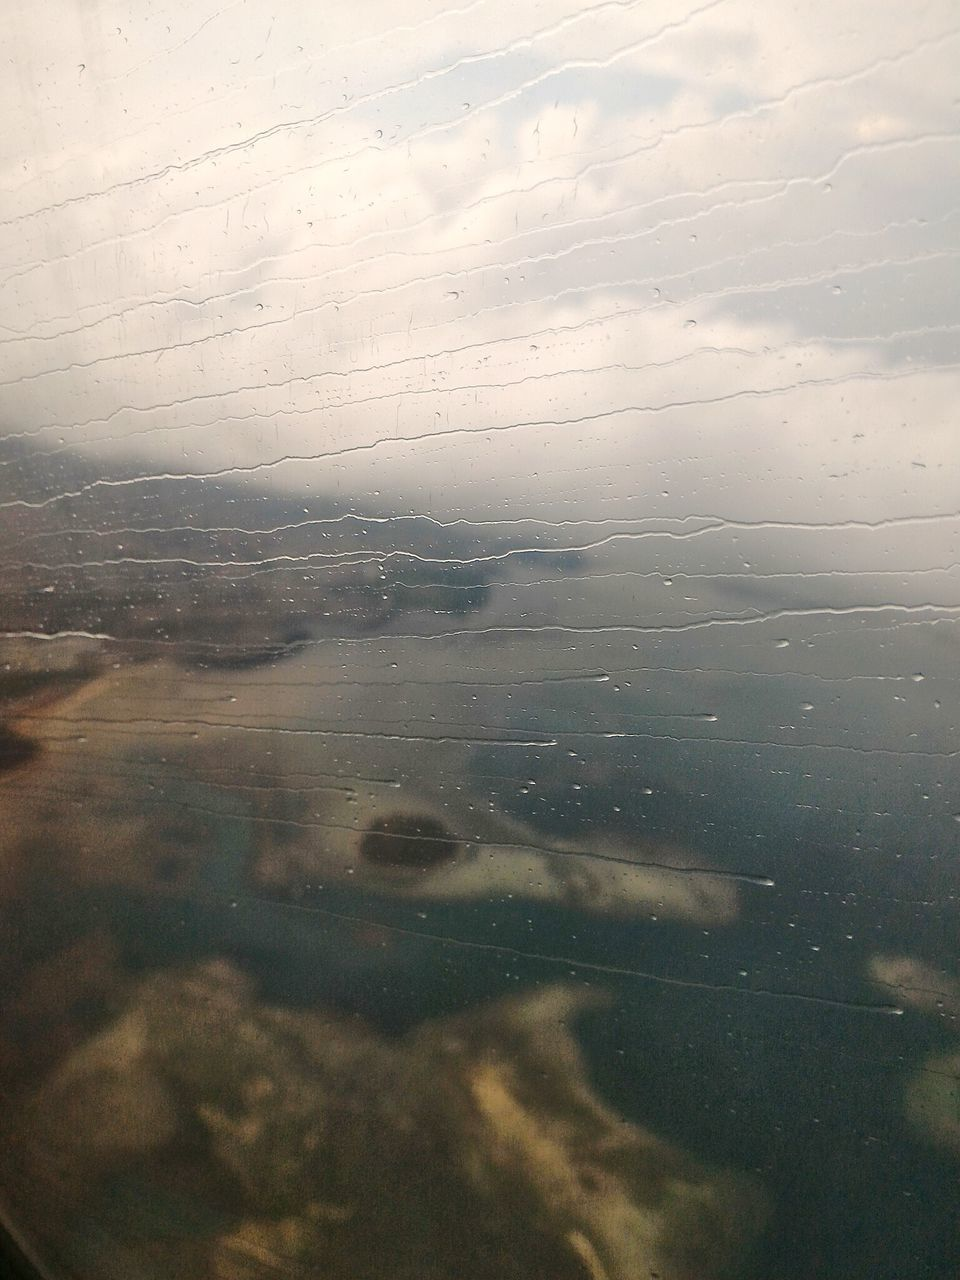 View From Airplane Window During Monsoon